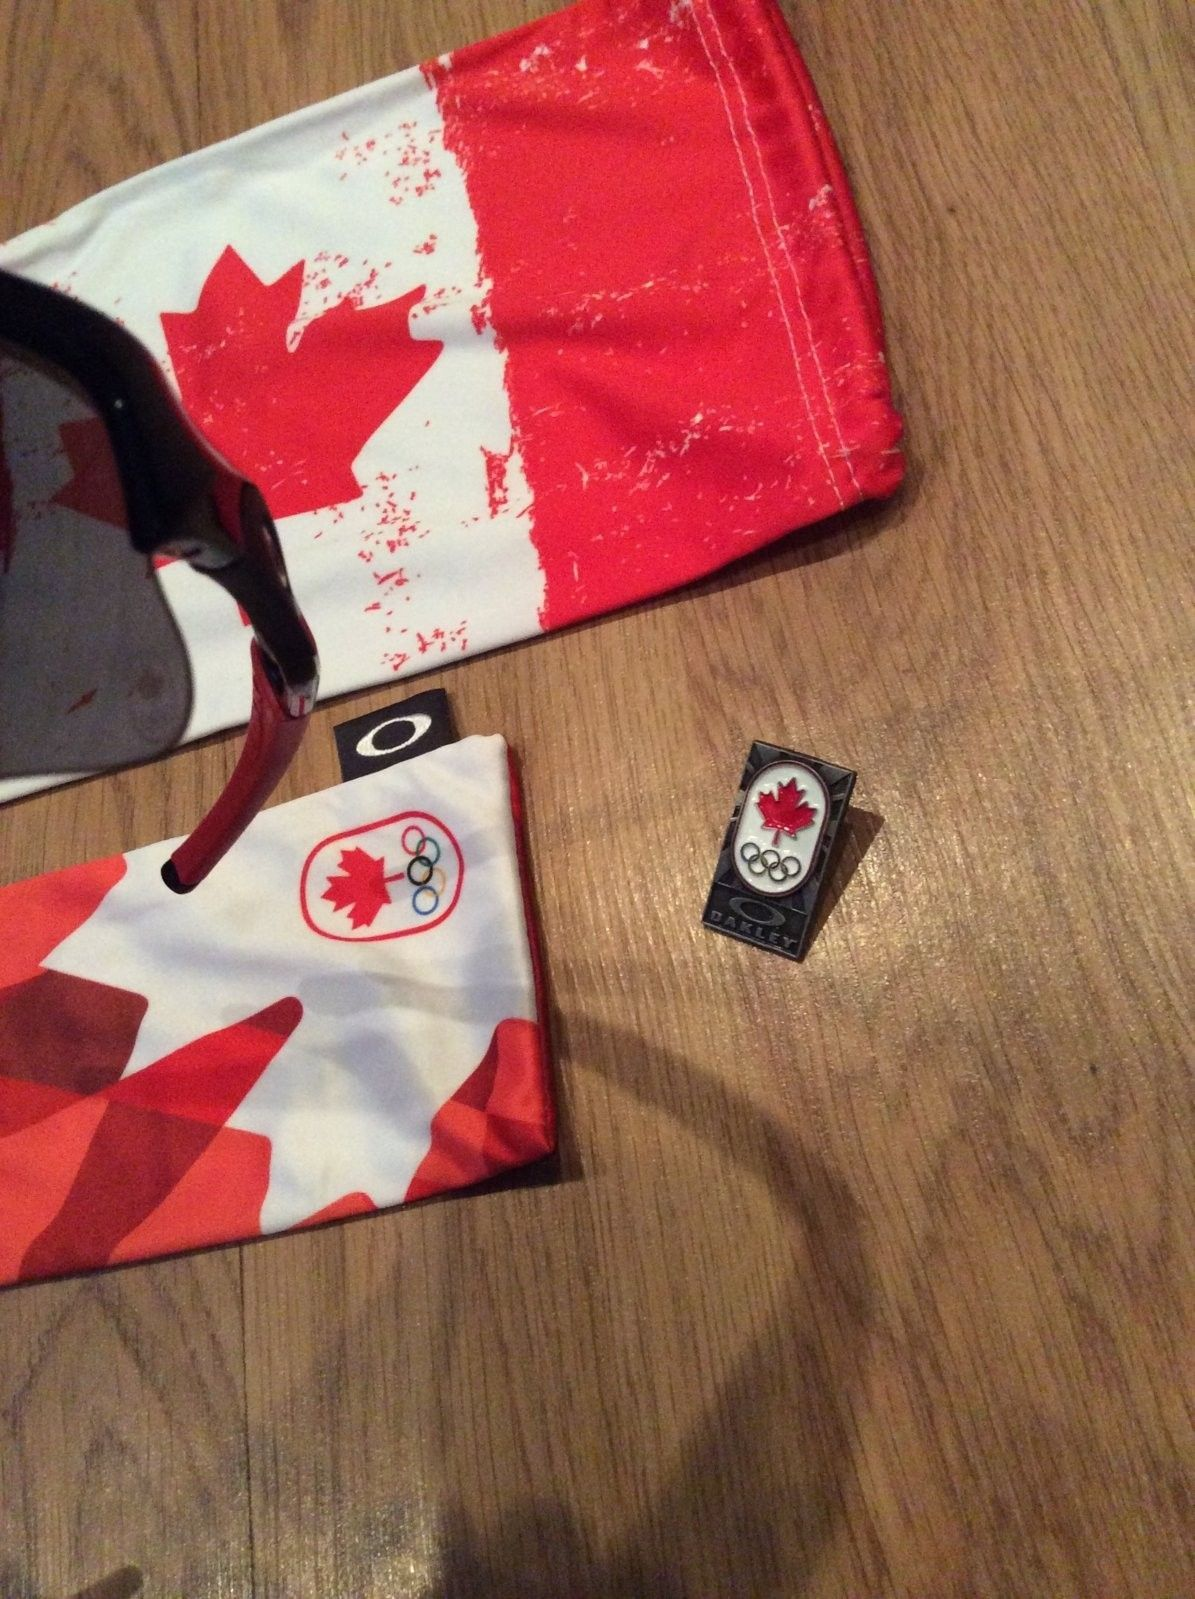 BNIB Canada Olympic Bundle $225 Shipped - image.jpeg